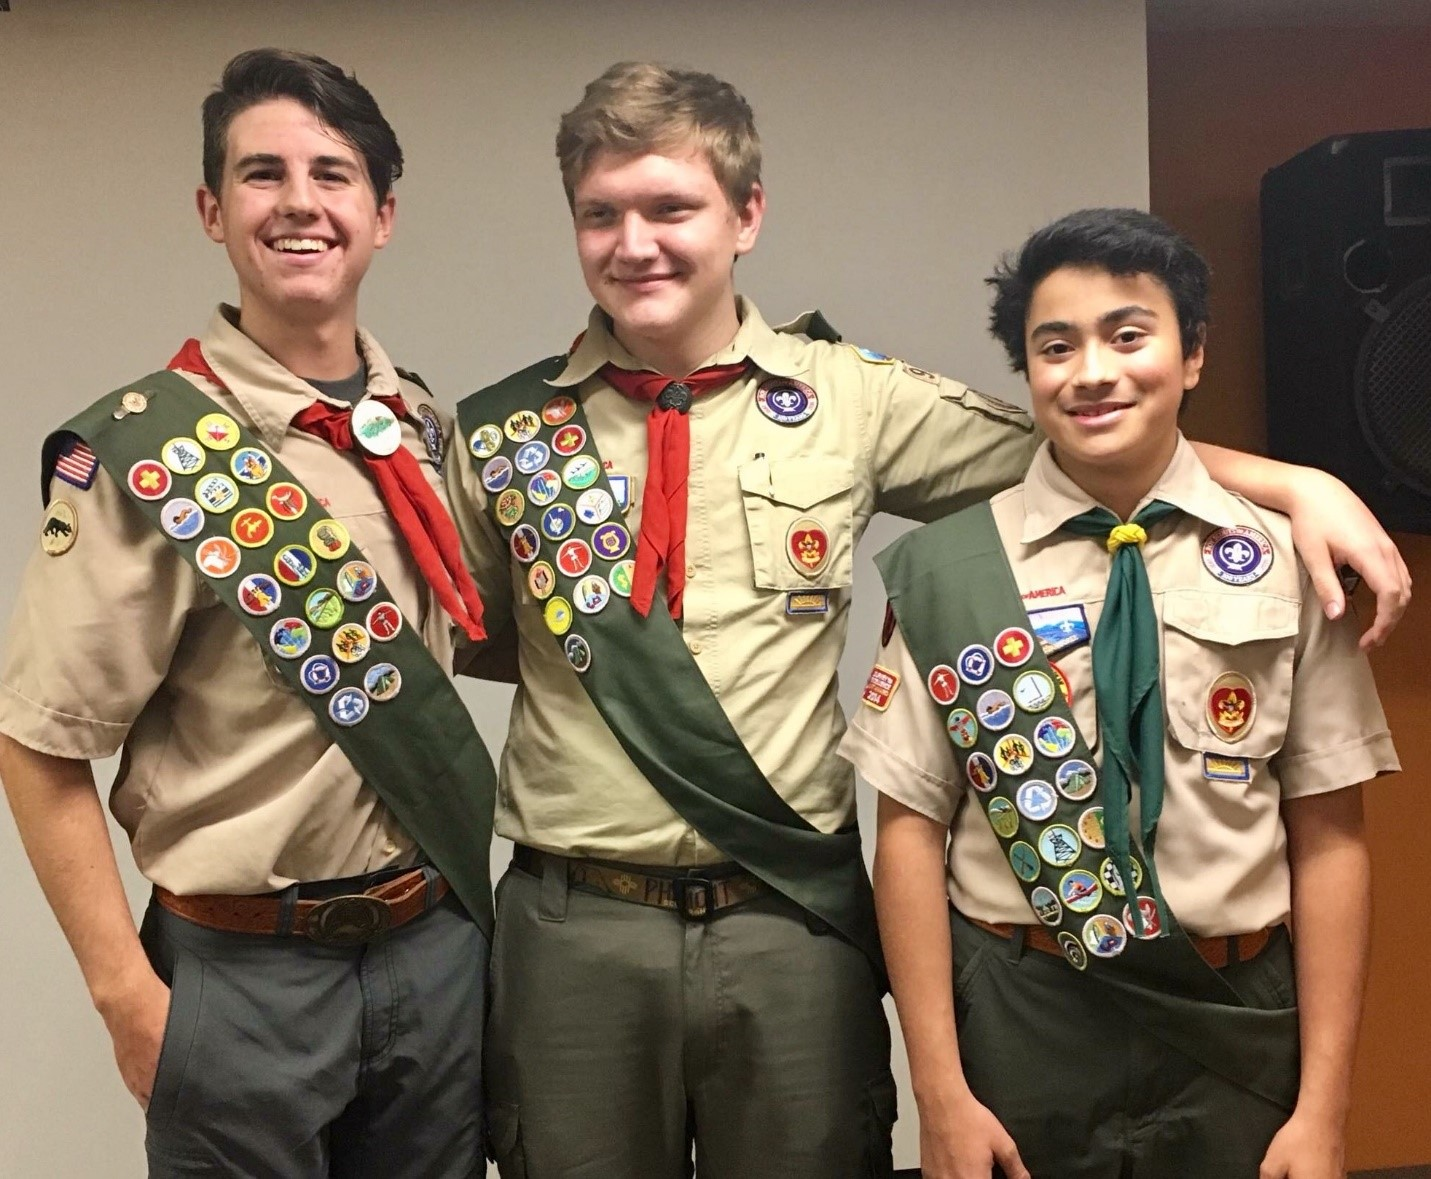 The three new Eagle Scouts from Troop 994